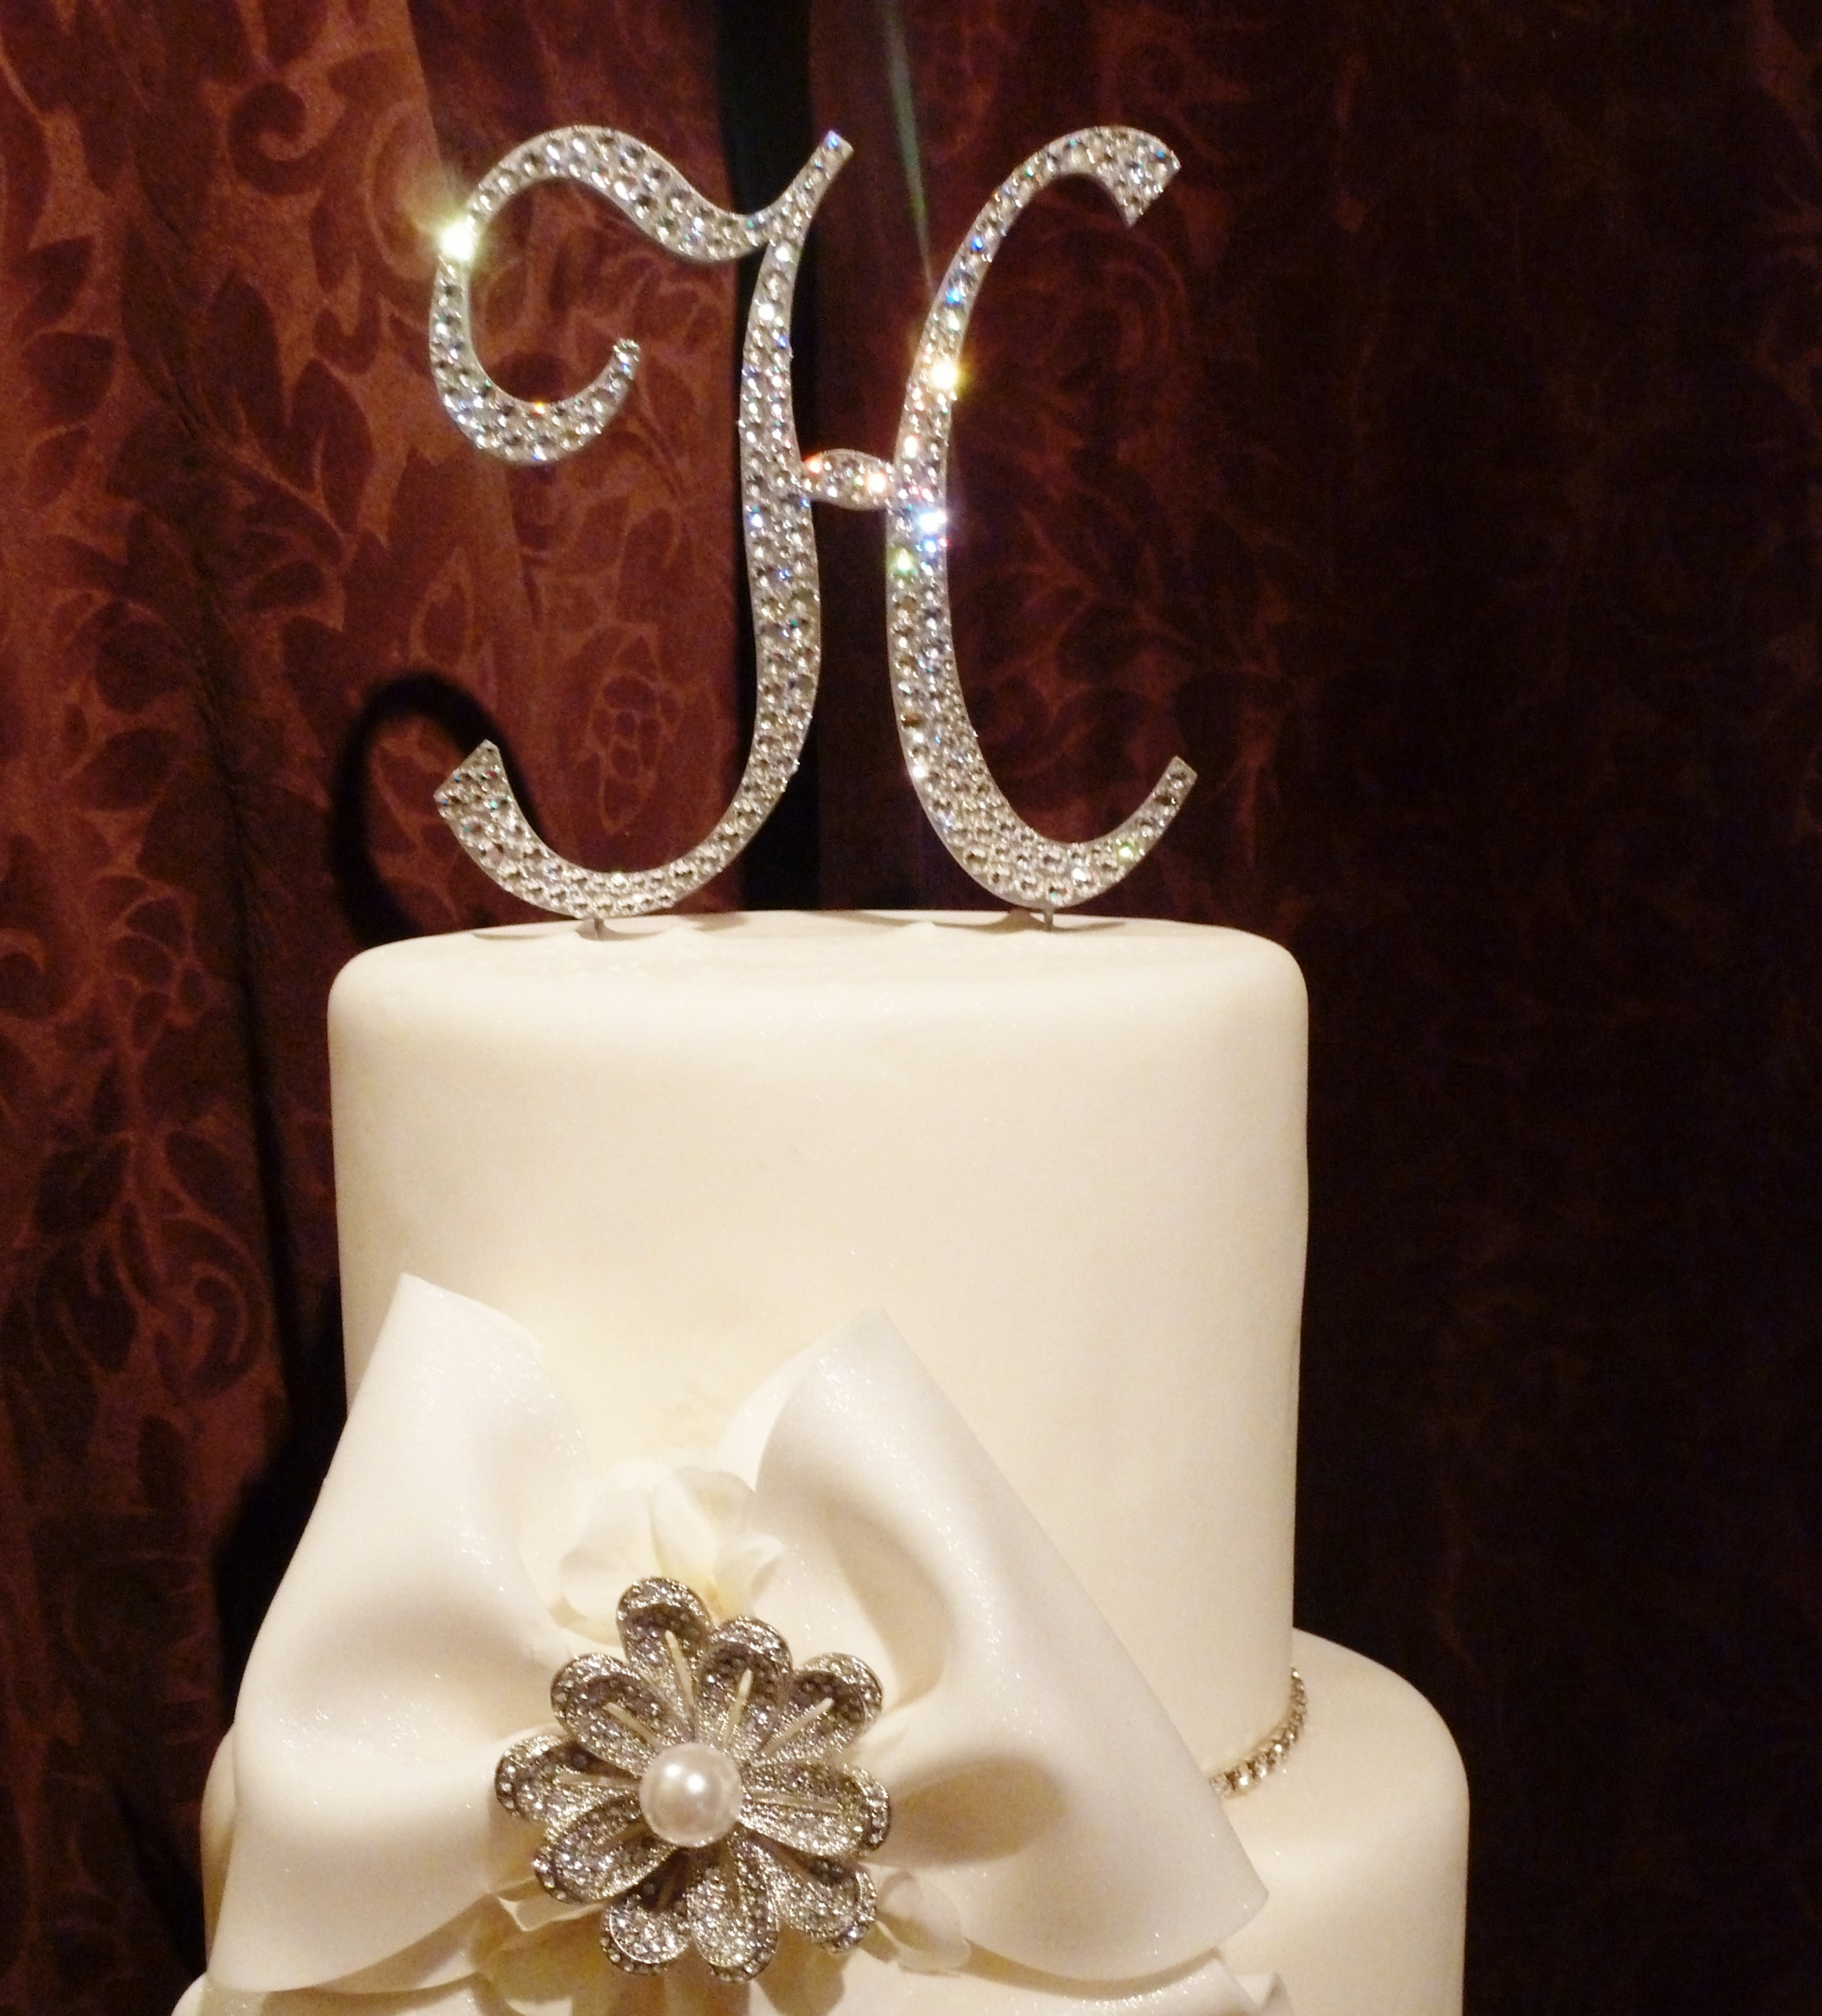 Initials Cake Toppers For Wedding Cakes  23 Unique Monogram Wedding Cake Toppers